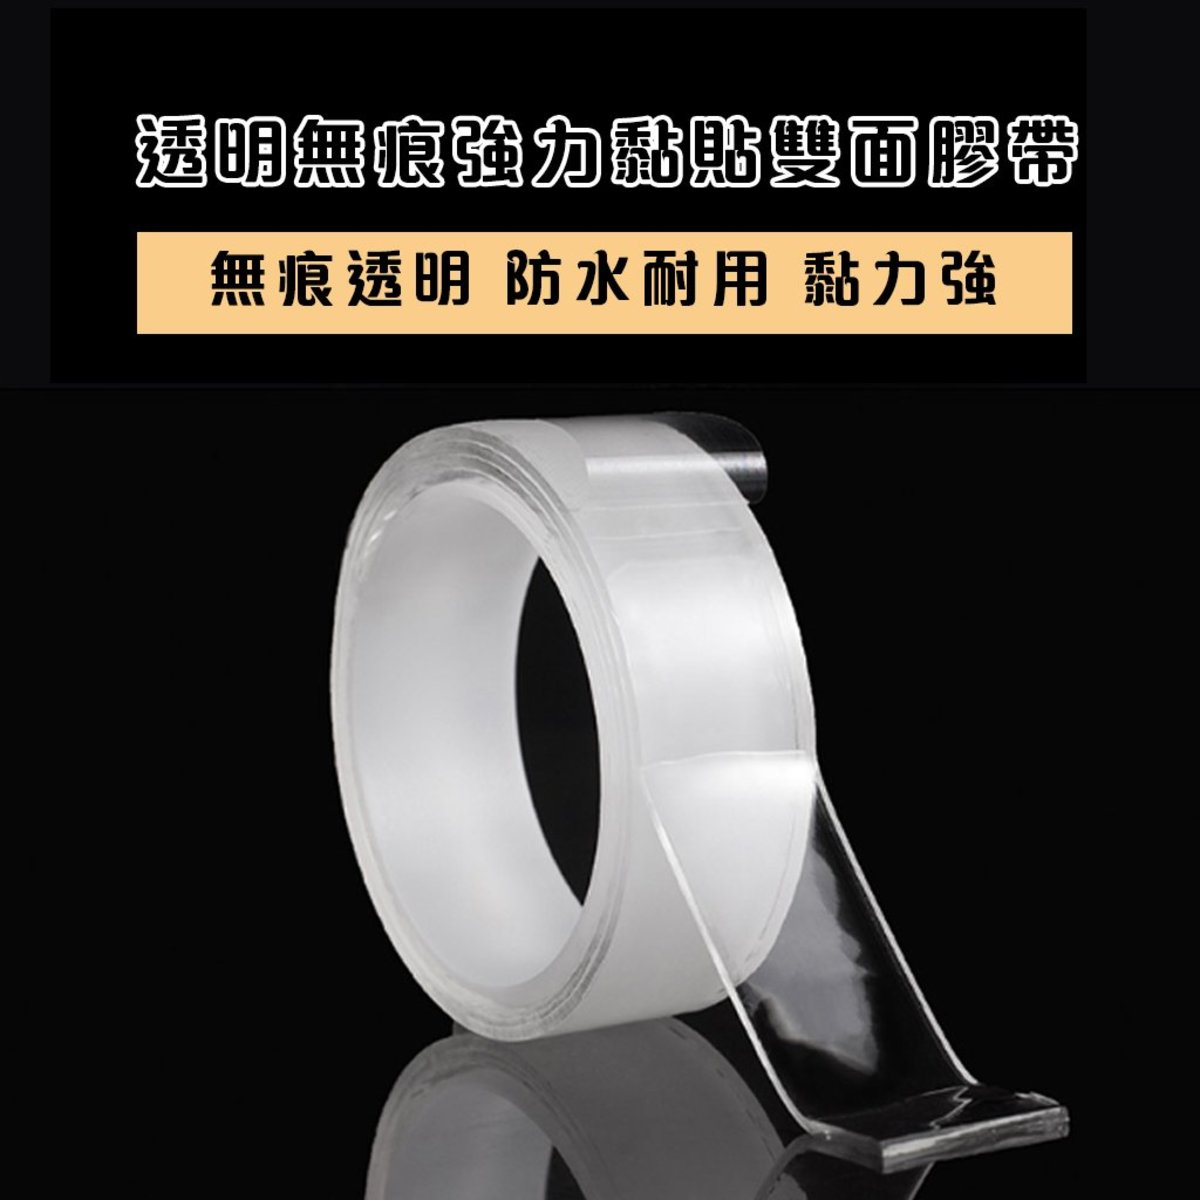 Transparent And Strong Adhesive Double-Sided Tape (Transparent, 3m Long)